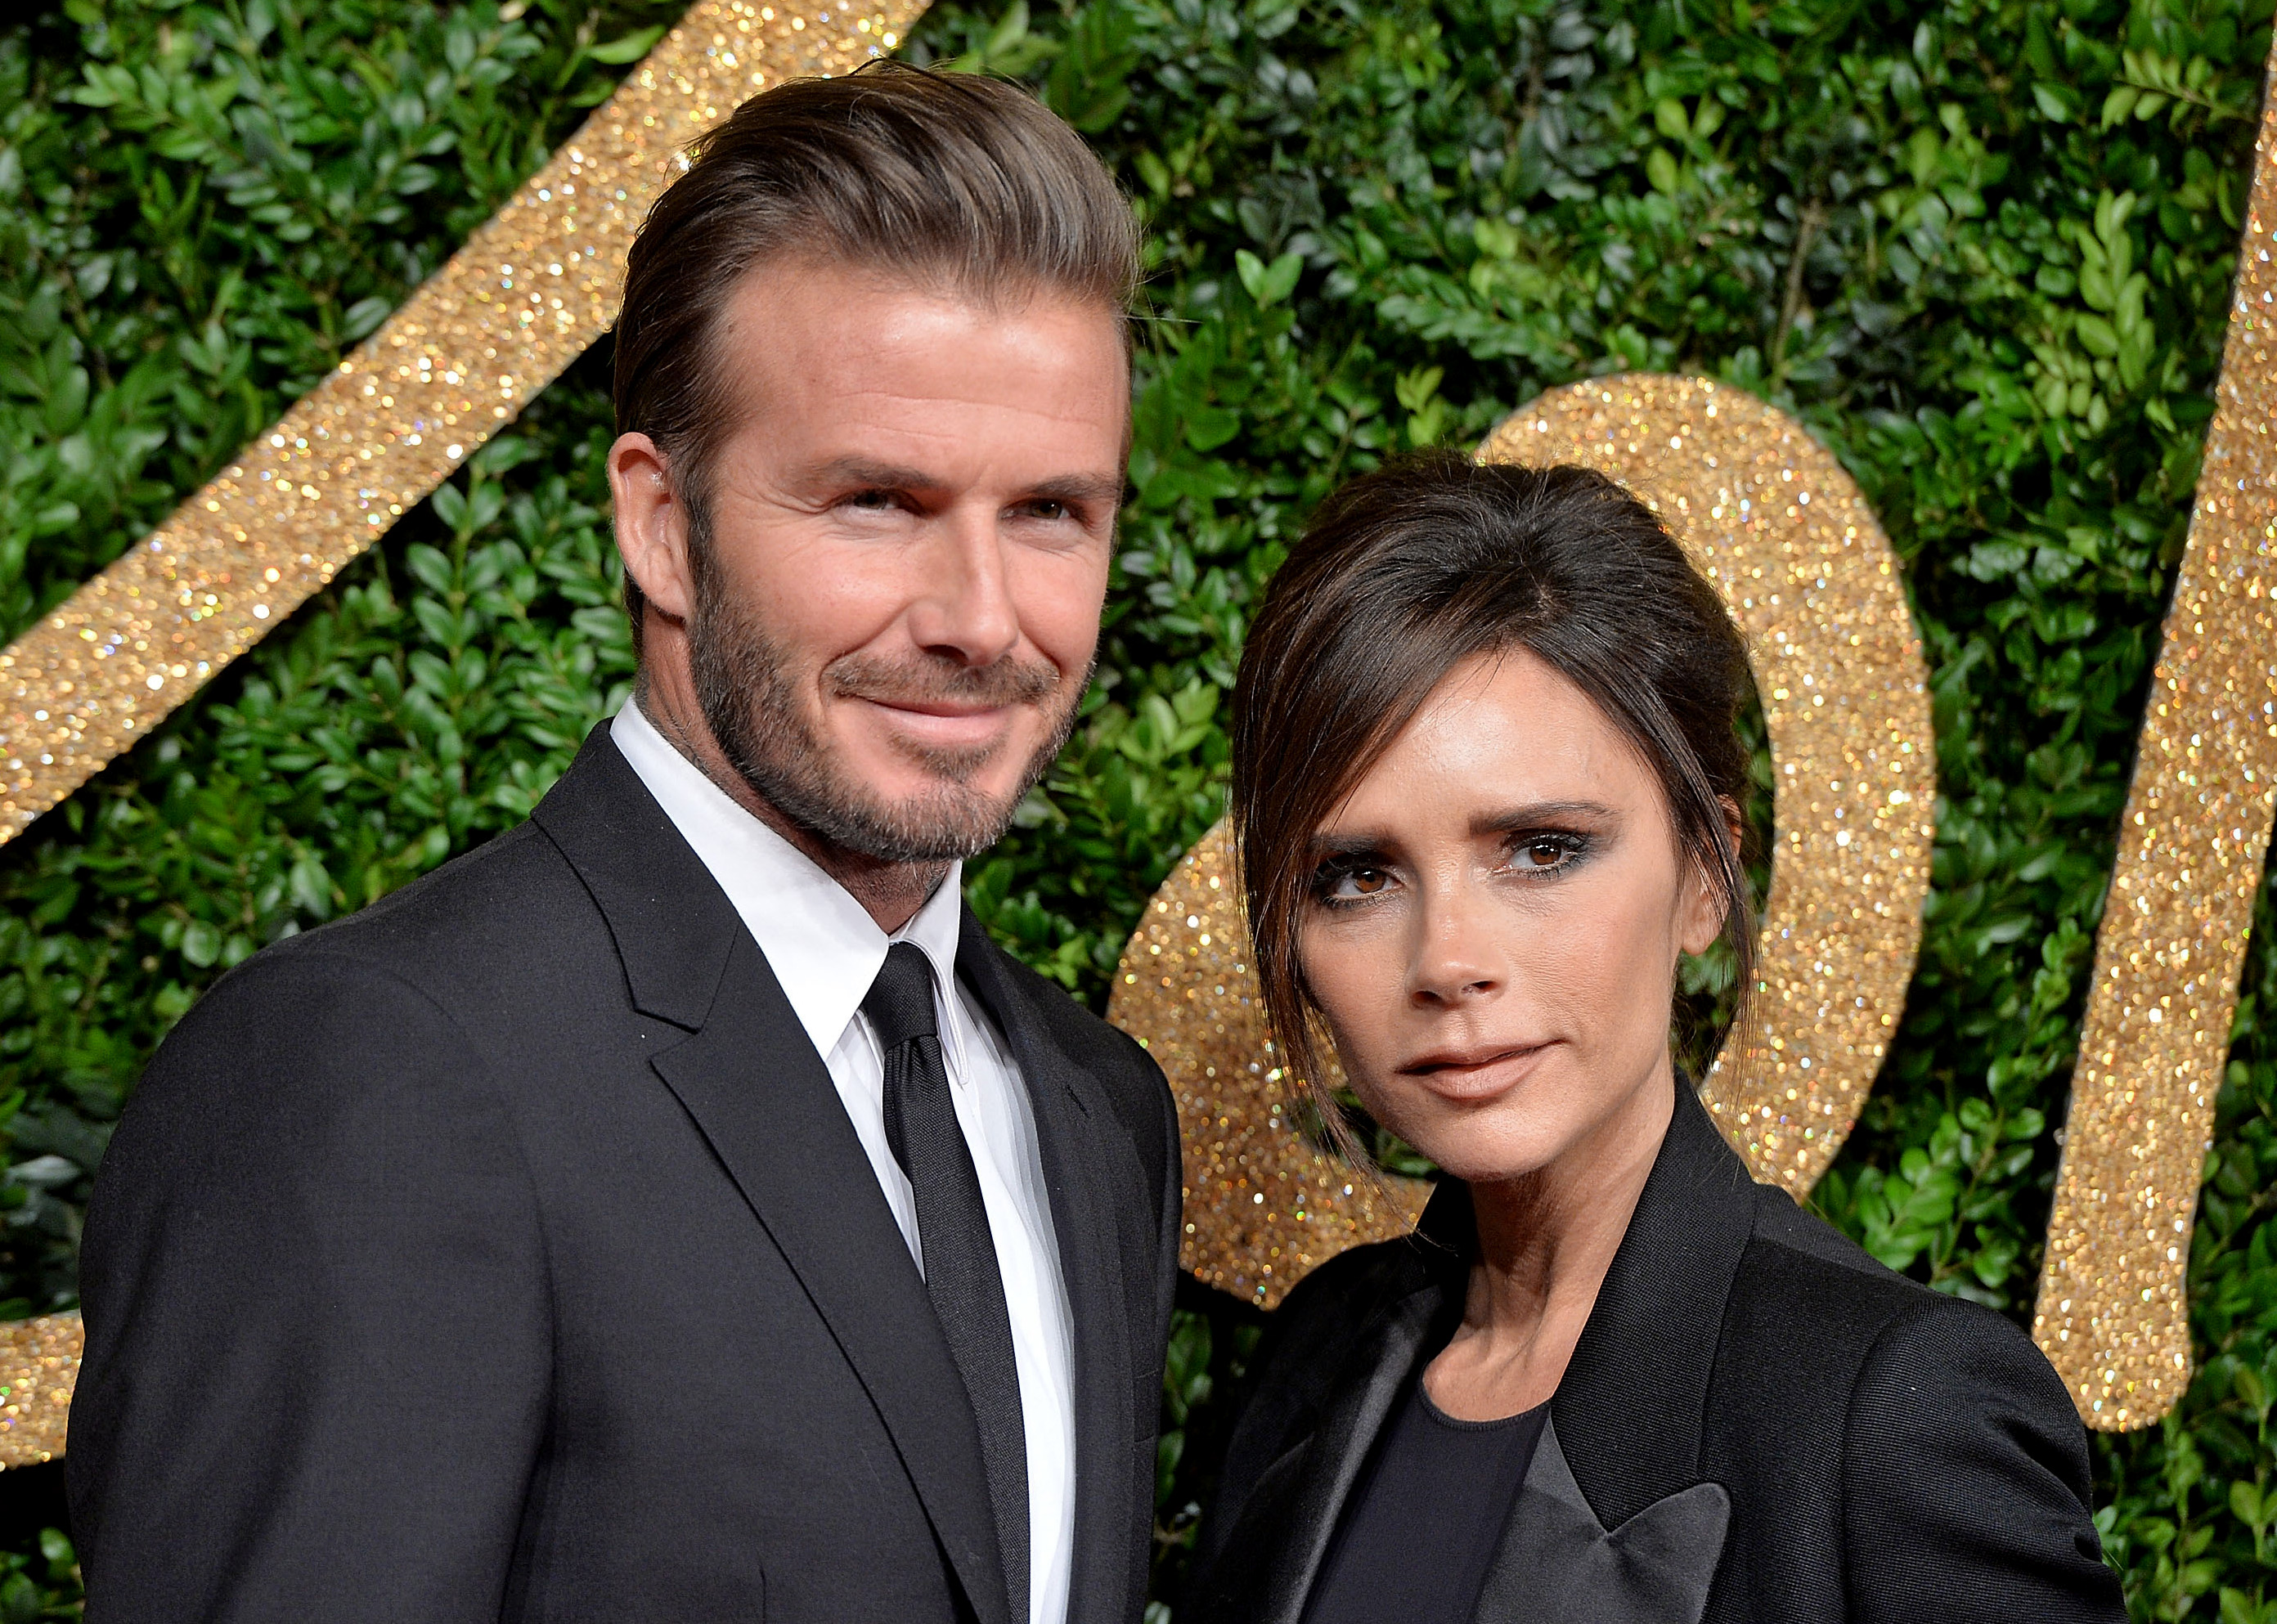 David and Victoria Beckham hosted dinner at Selfridges' glitzy new restaurant Brasserie of Light on Oxford Street in London